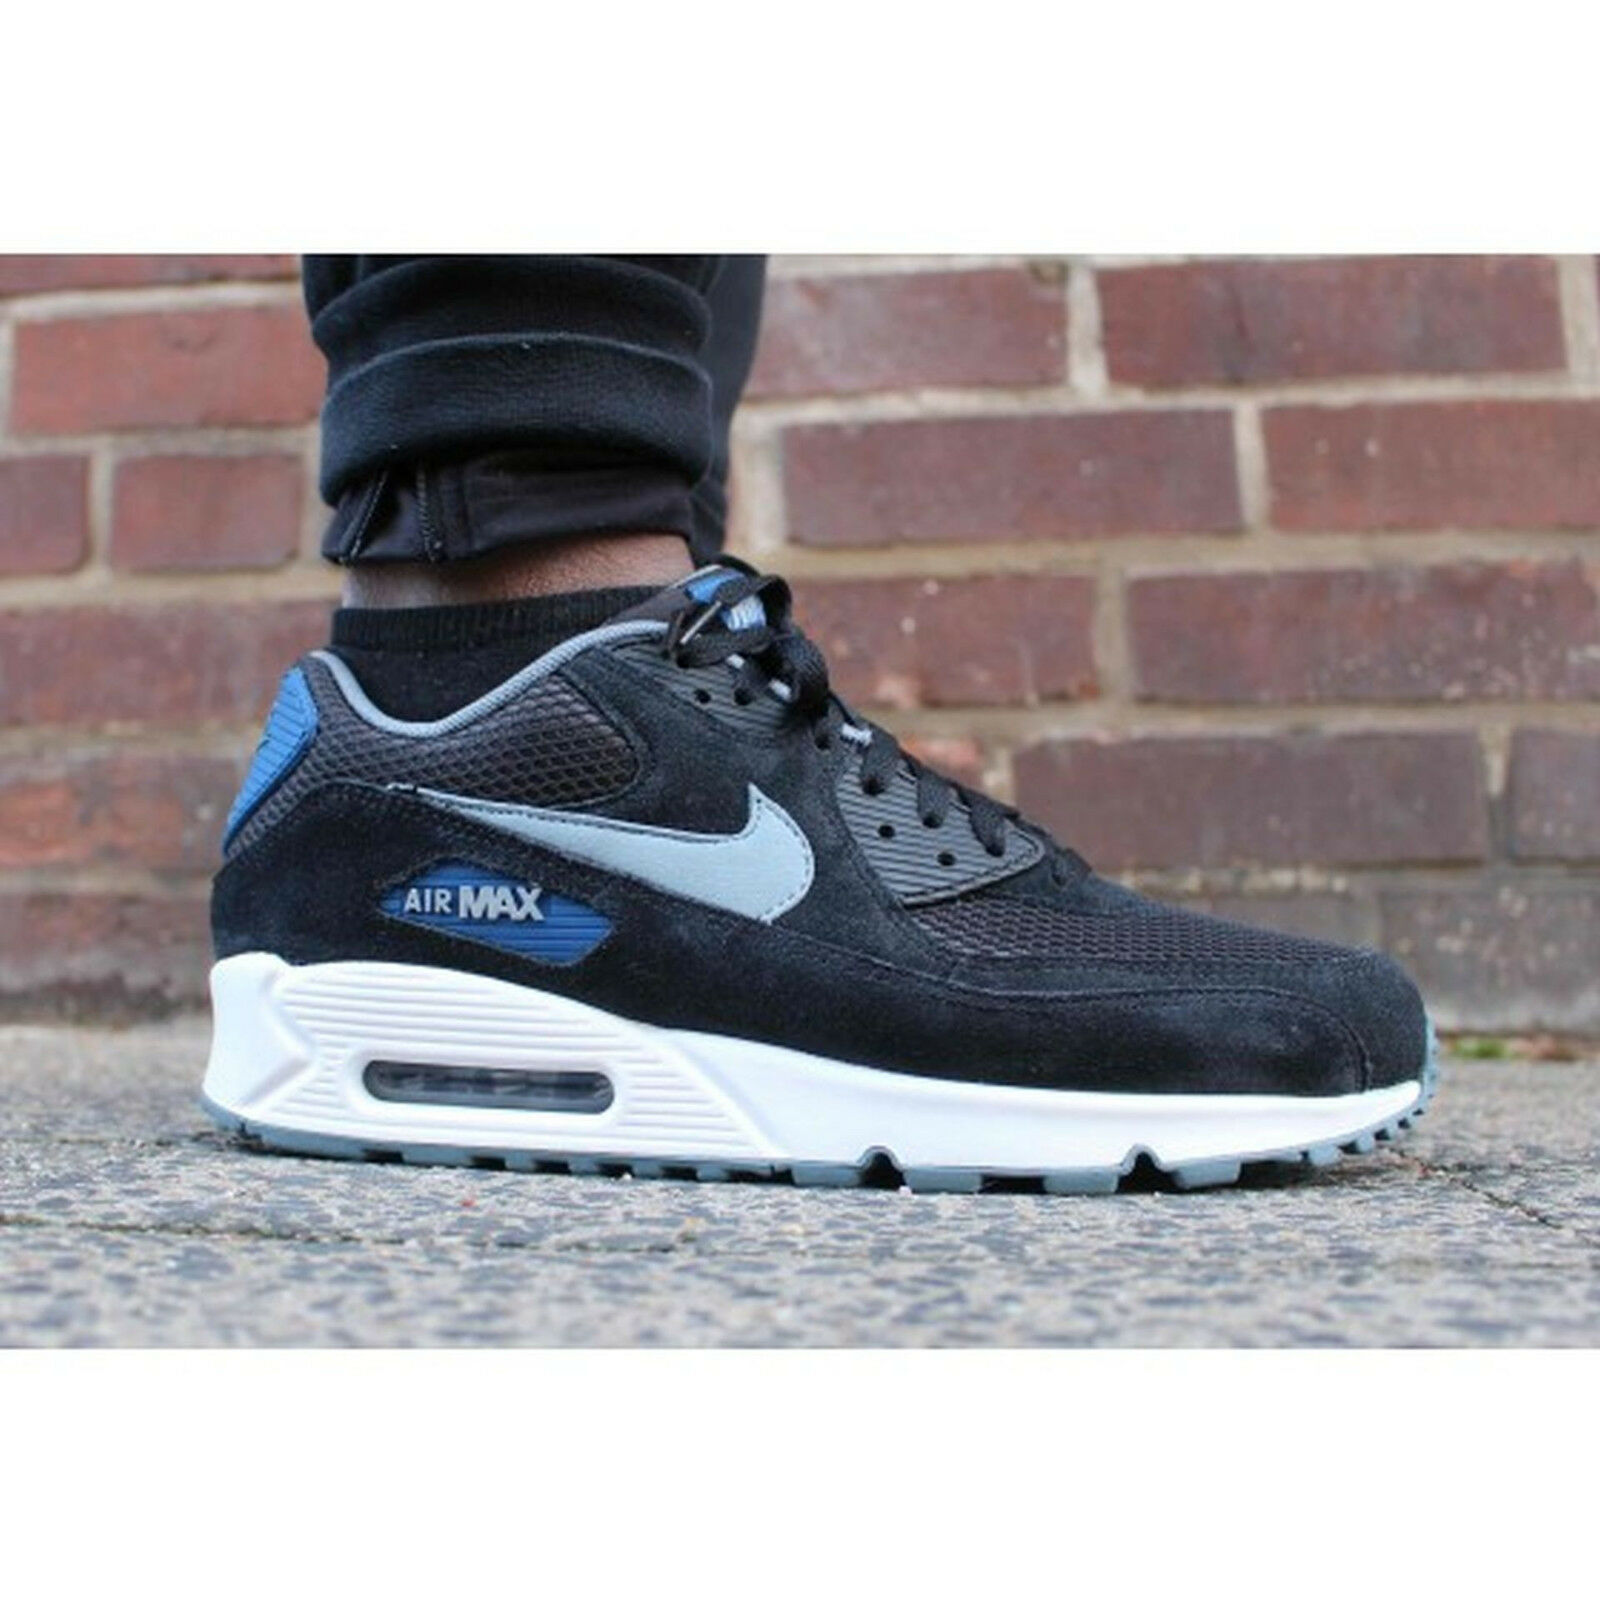 NIKE AIR MAX 90 90 90 ESSENTIAL Mens Size 13 Black Grey- bluee-bluee-Graphite 537384-041 be23e8